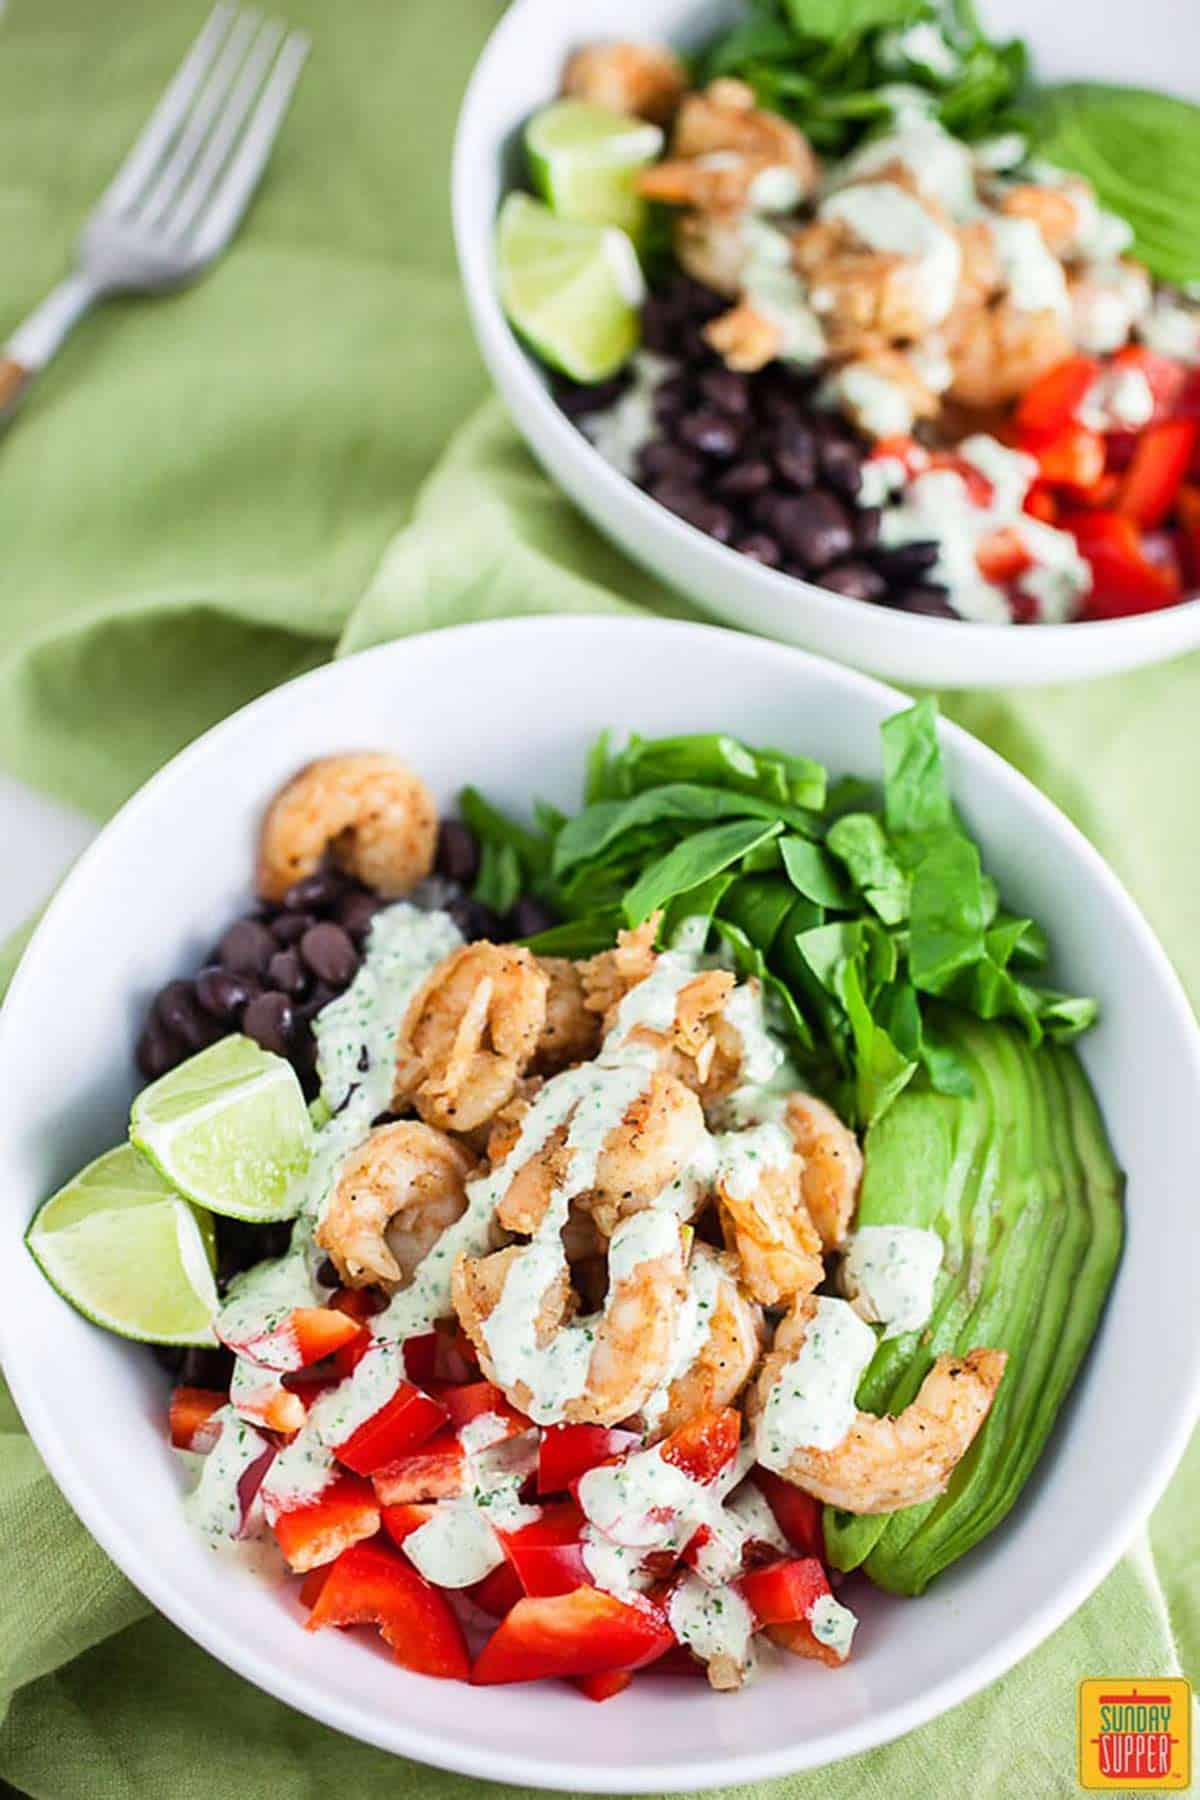 Two bowls of Shrimp Mexican Rice bowl on a green tablecloth